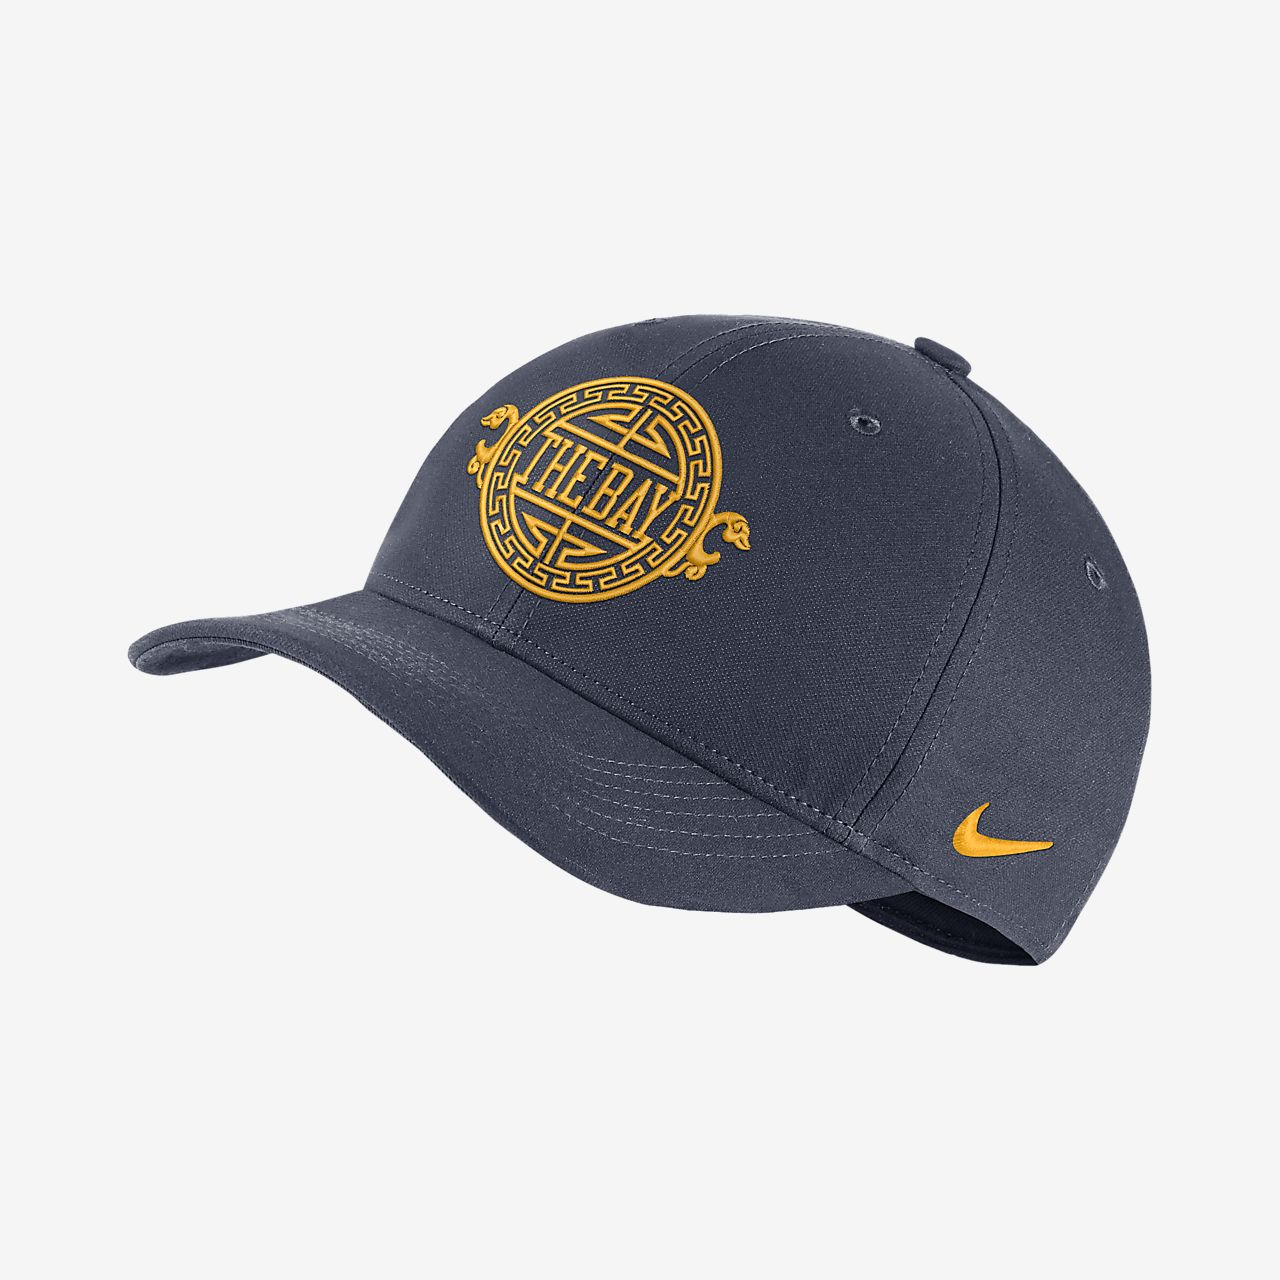 85bc072e94f32 Golden State Warriors City Edition Nike AeroBill Classic99 NBA Hat ...